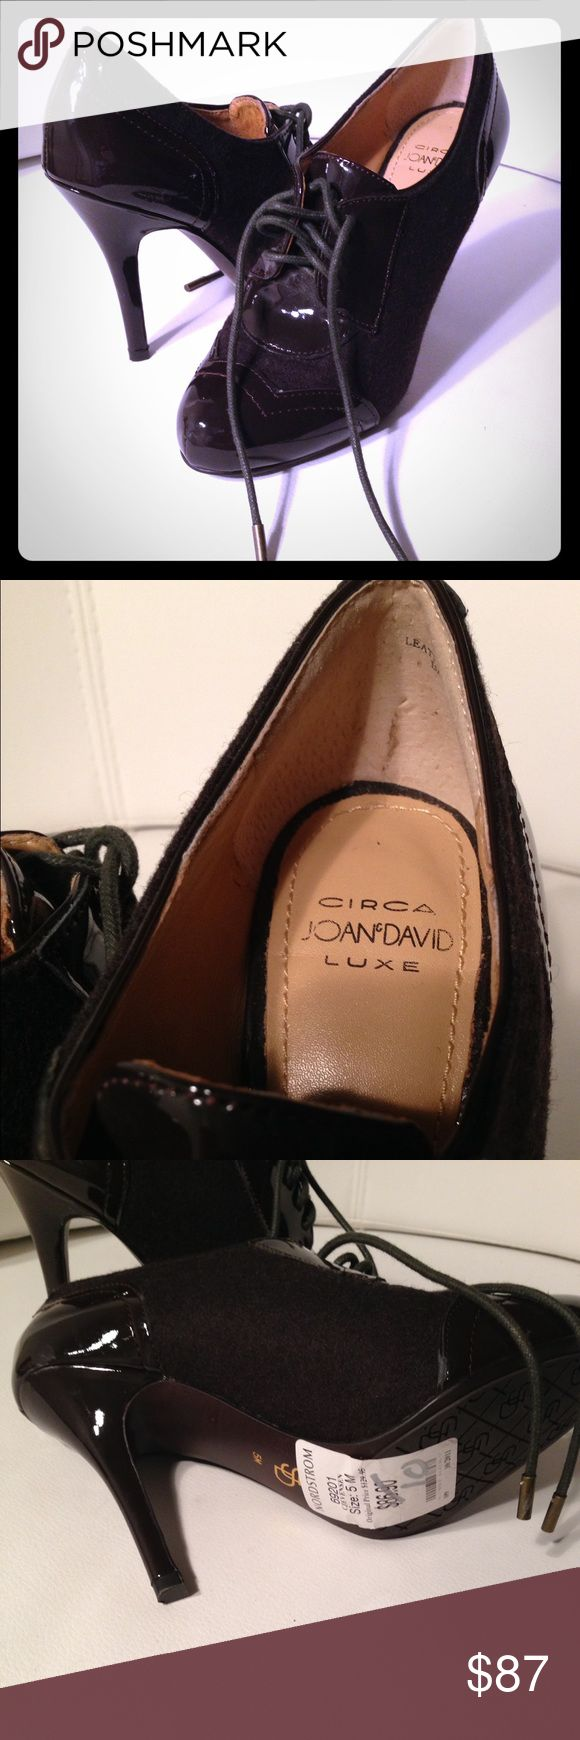 CIRCA JOAN & DAVID Luxe Shoes Stylish and comfortable. This shoe looks great.  Can be wear with jeans or dress pants. These Joan & David Collection shoes are brand new. Joan & David Shoes Ankle Boots & Booties